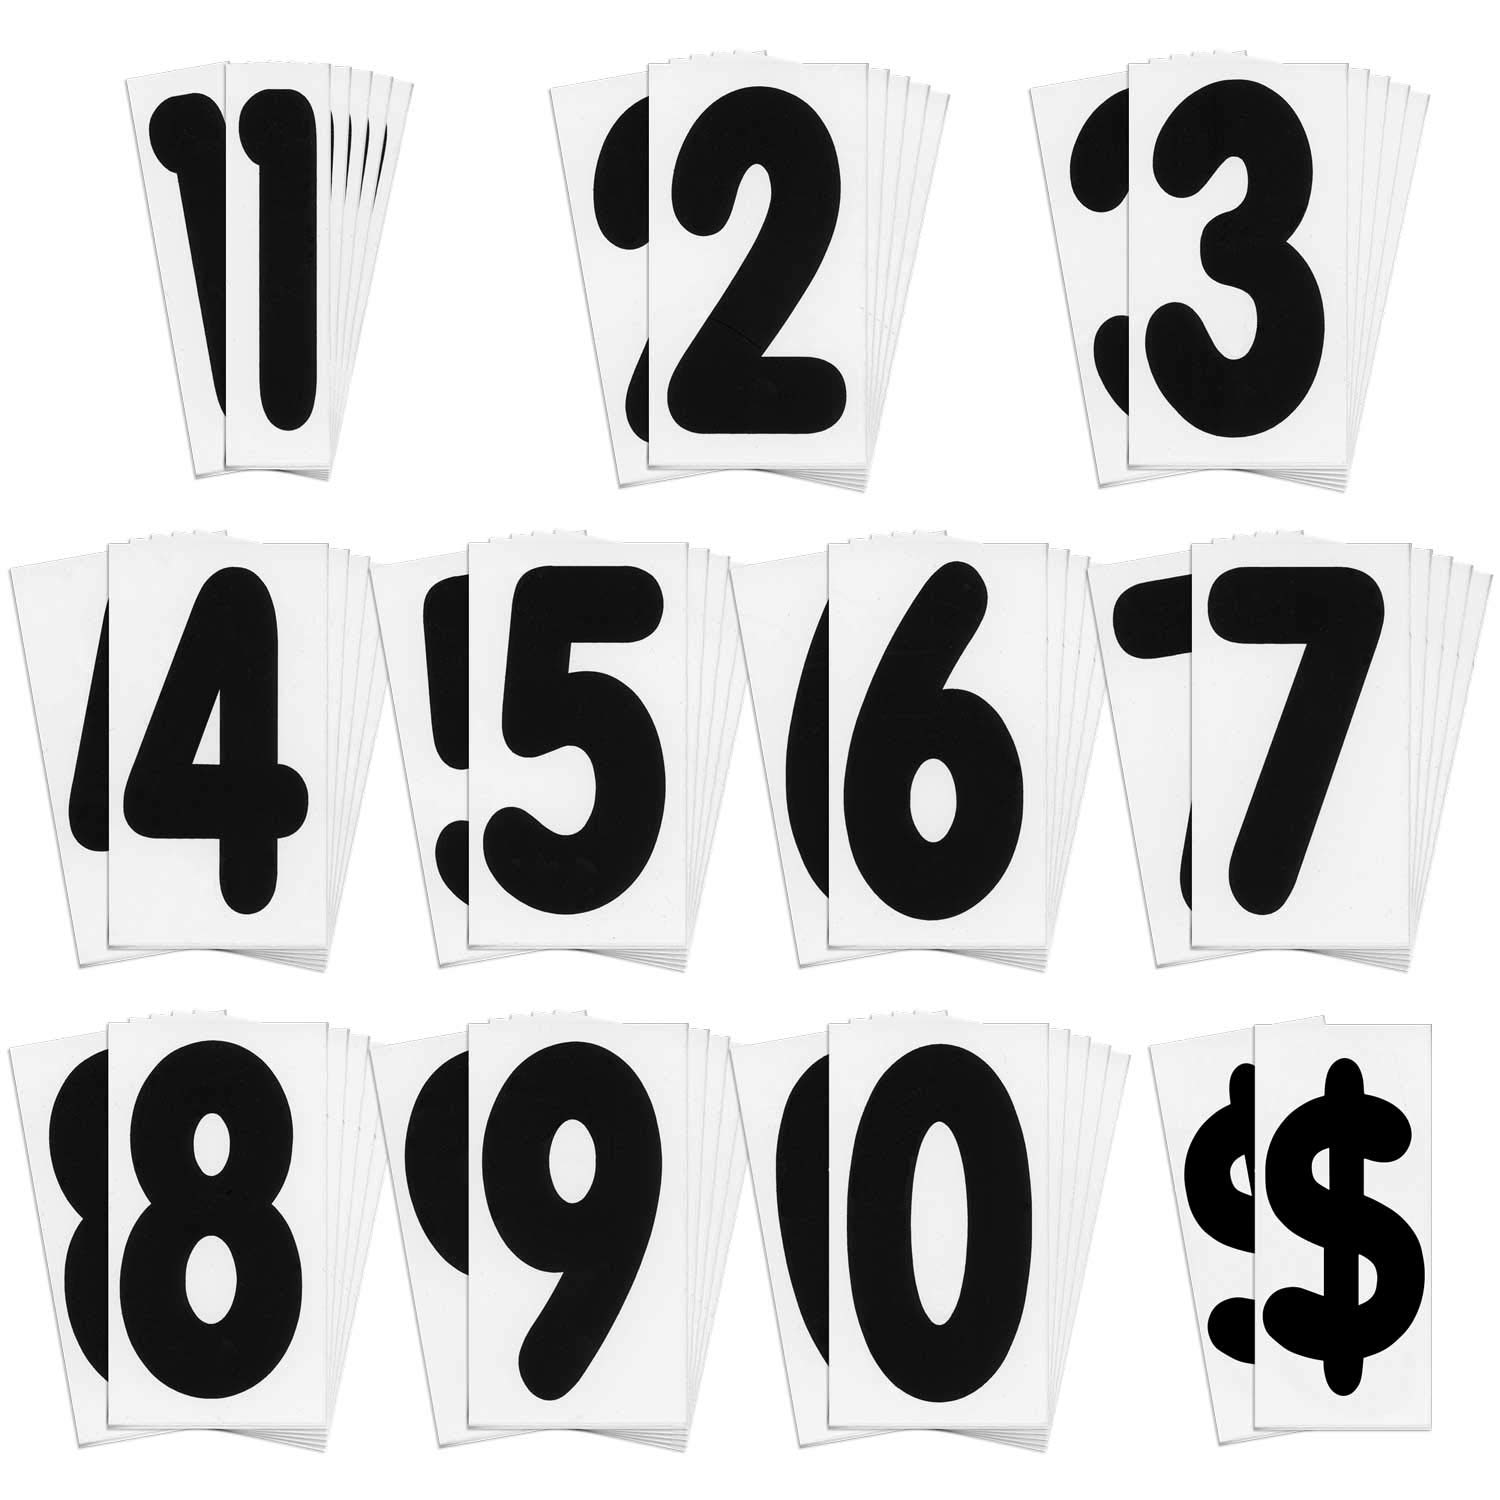 KitAbility Replacement Number Set for White Message Board Sidewalk Signs with 4 Inch Tracks Includes 6 Each of Black Numbers 0 to 9